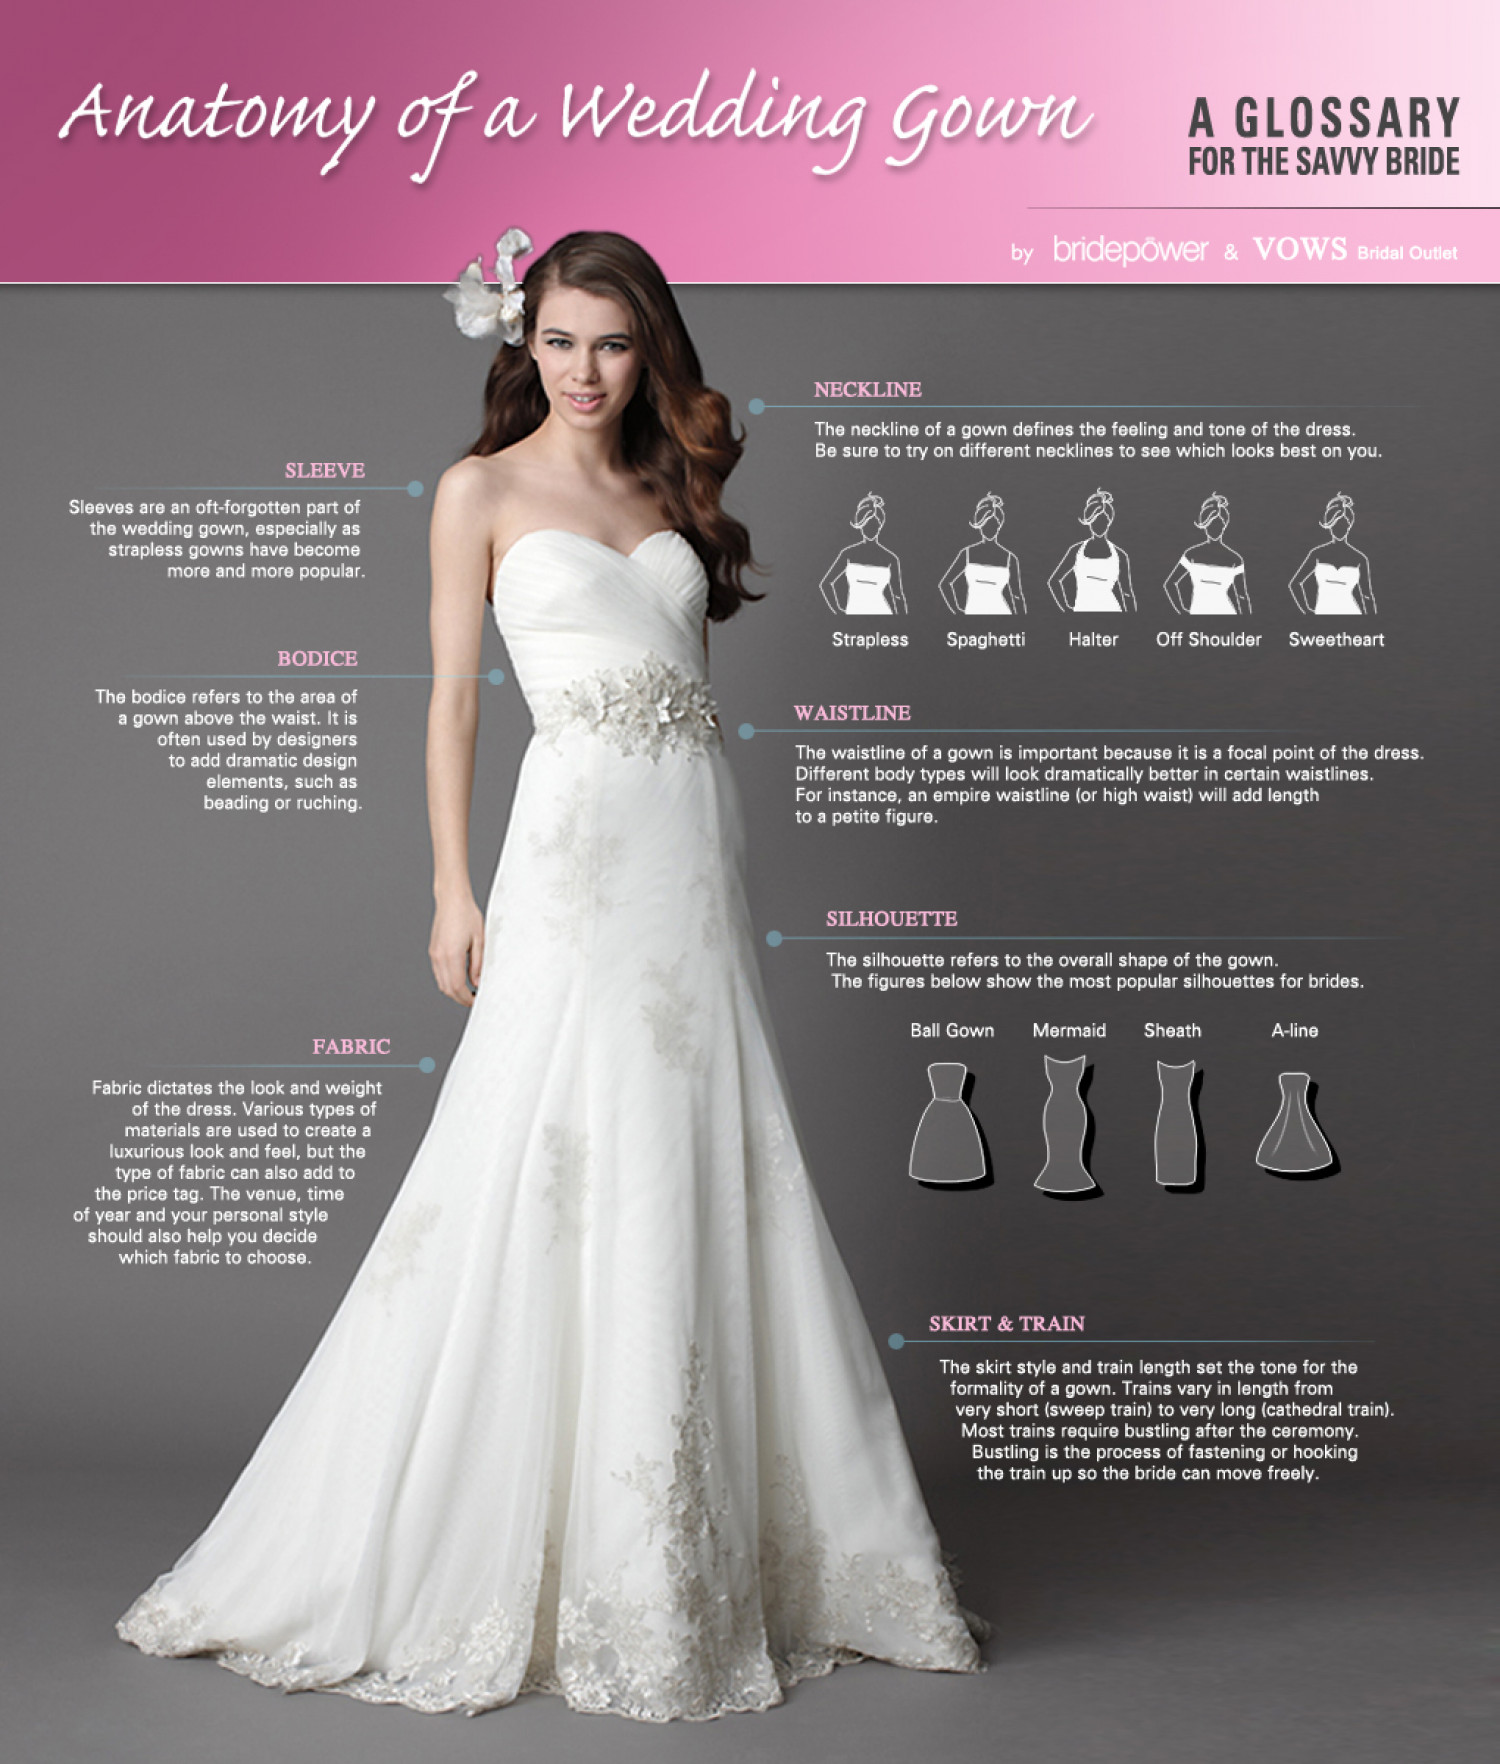 Anatomy of a Wedding Gown